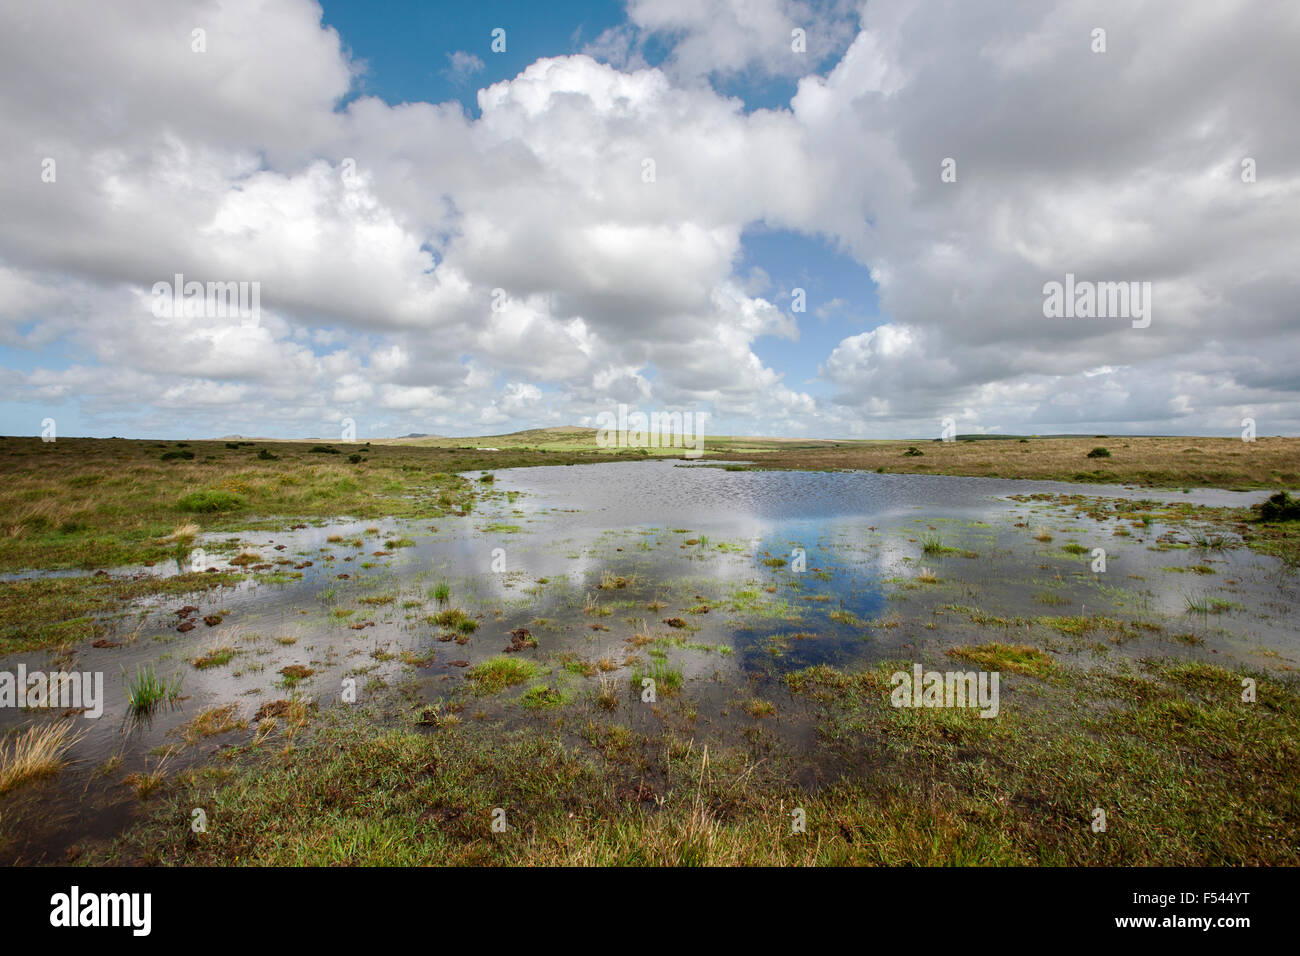 moorland  puddles form shallow  pool  white clouds drifting across a soft blue sky, reflected in the surface of - Stock Image